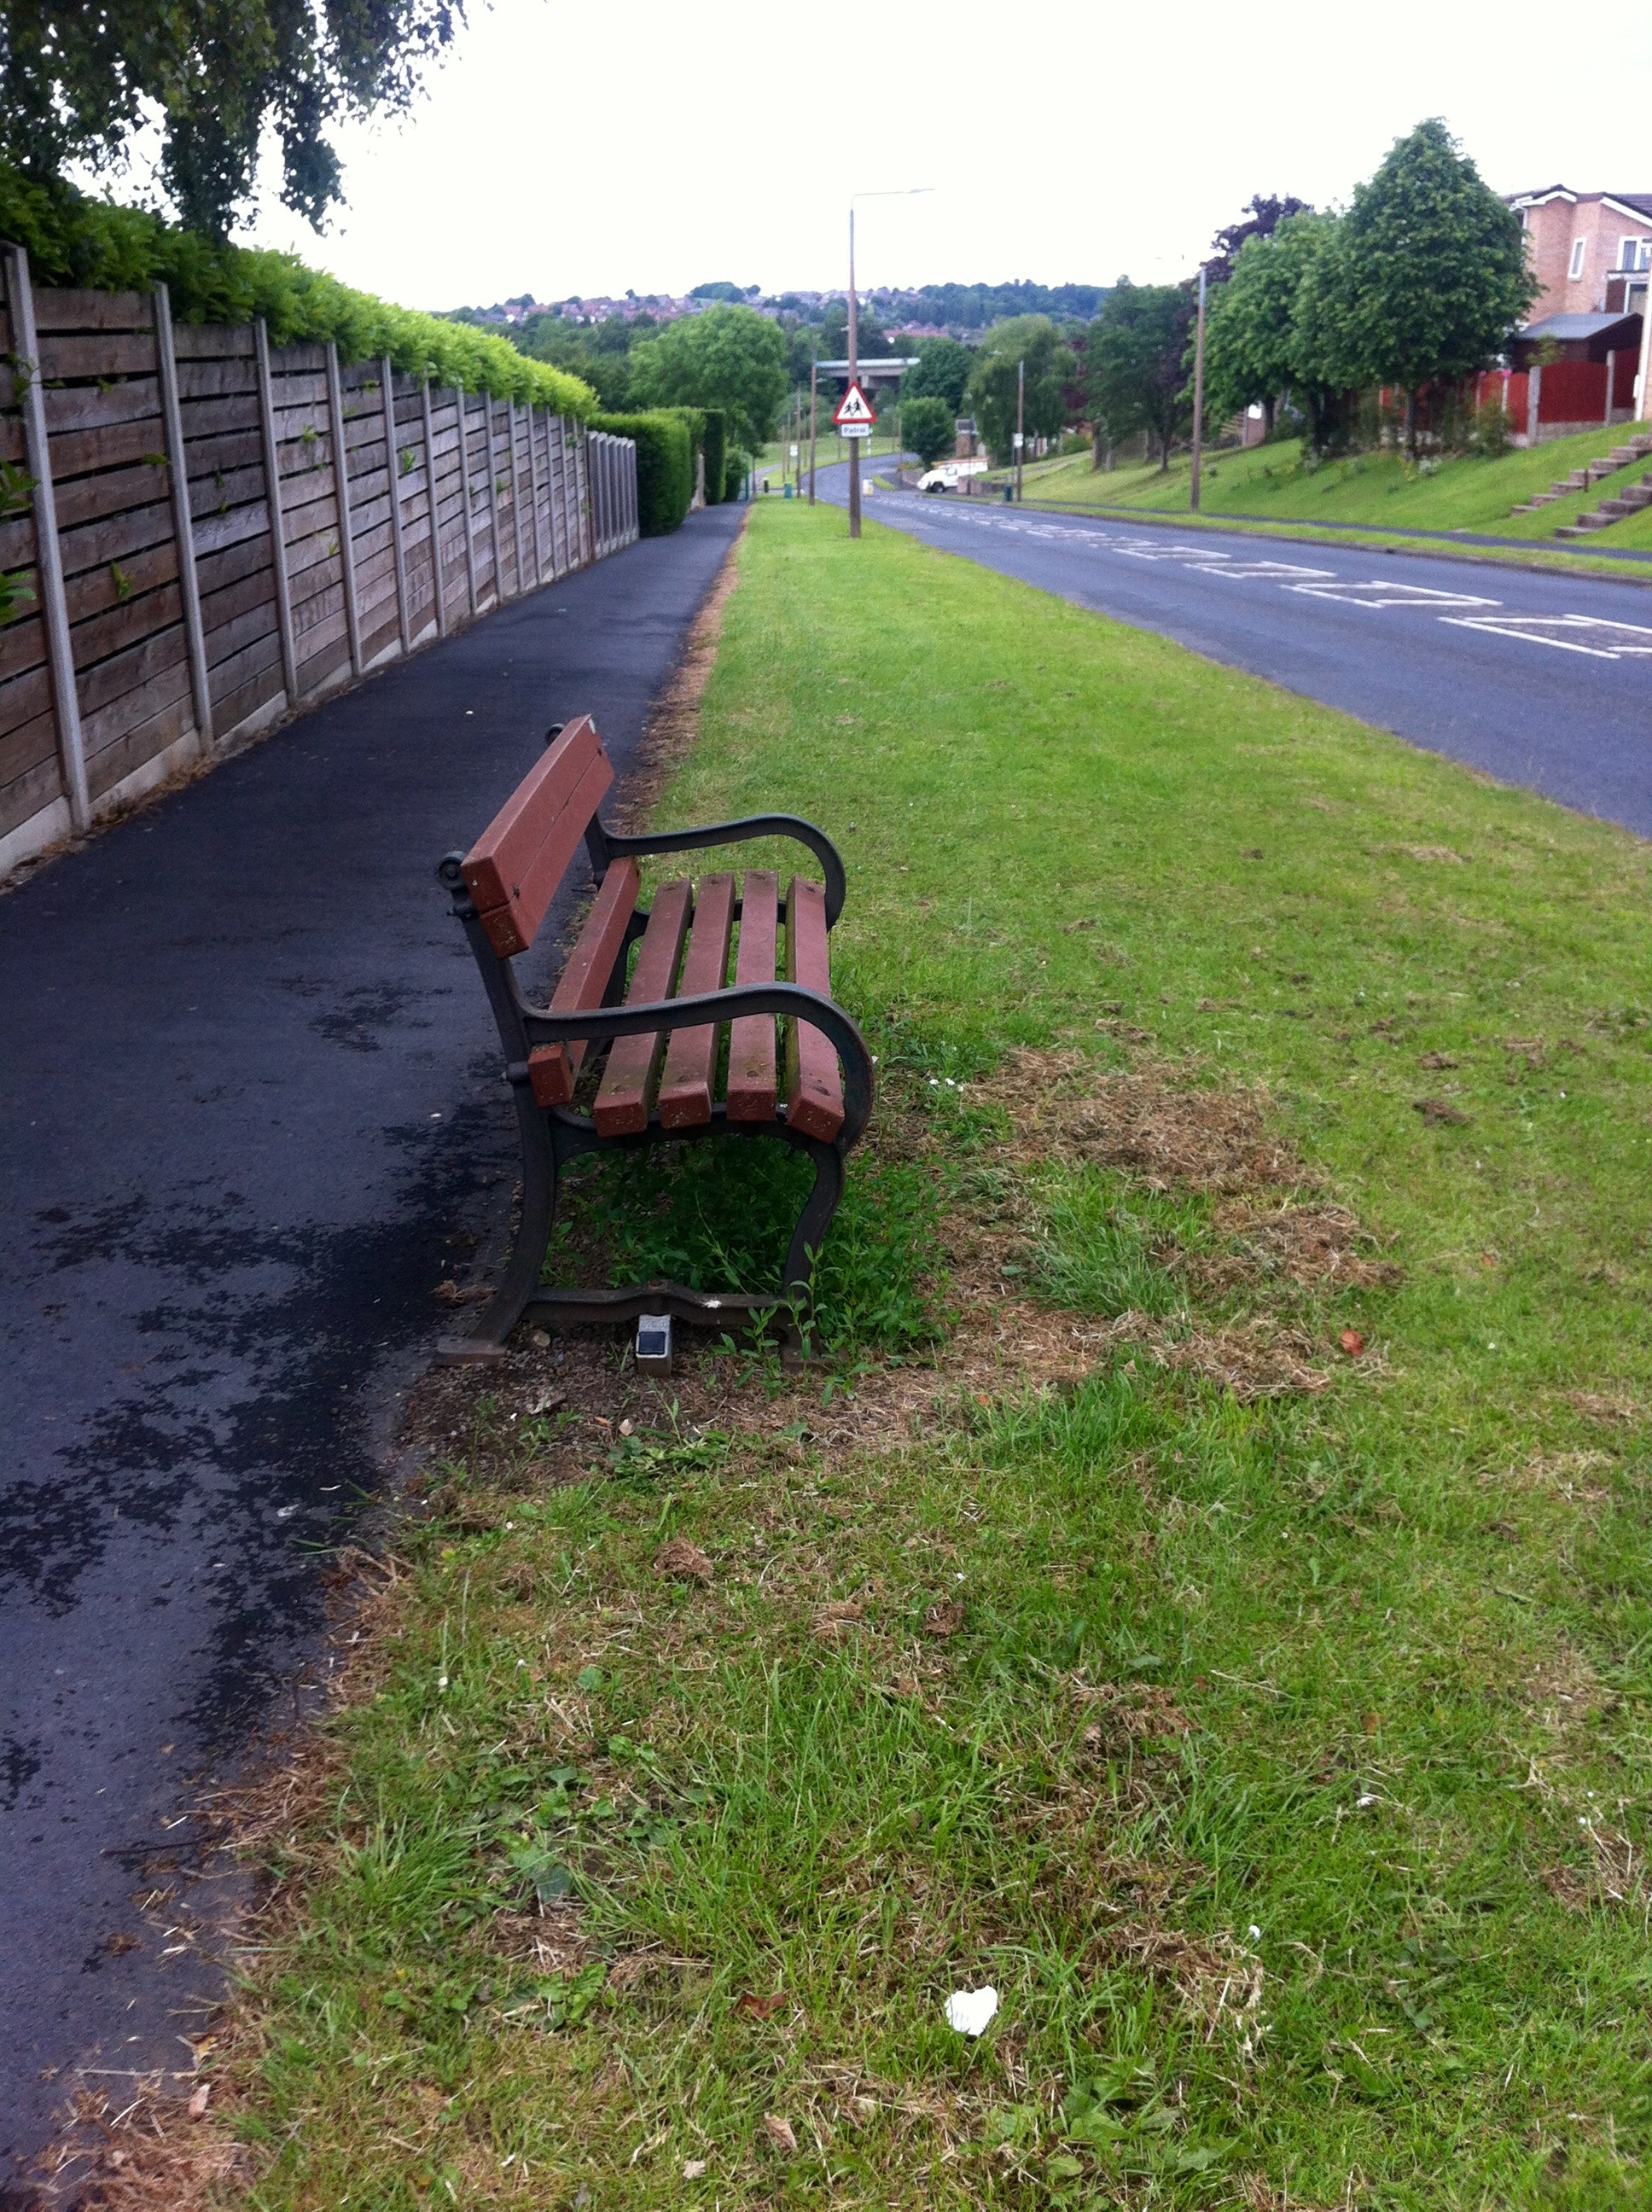 Photograph of an Empty Bench Dronfield Woodhouse UK - street photography - Paul Conneally 2017